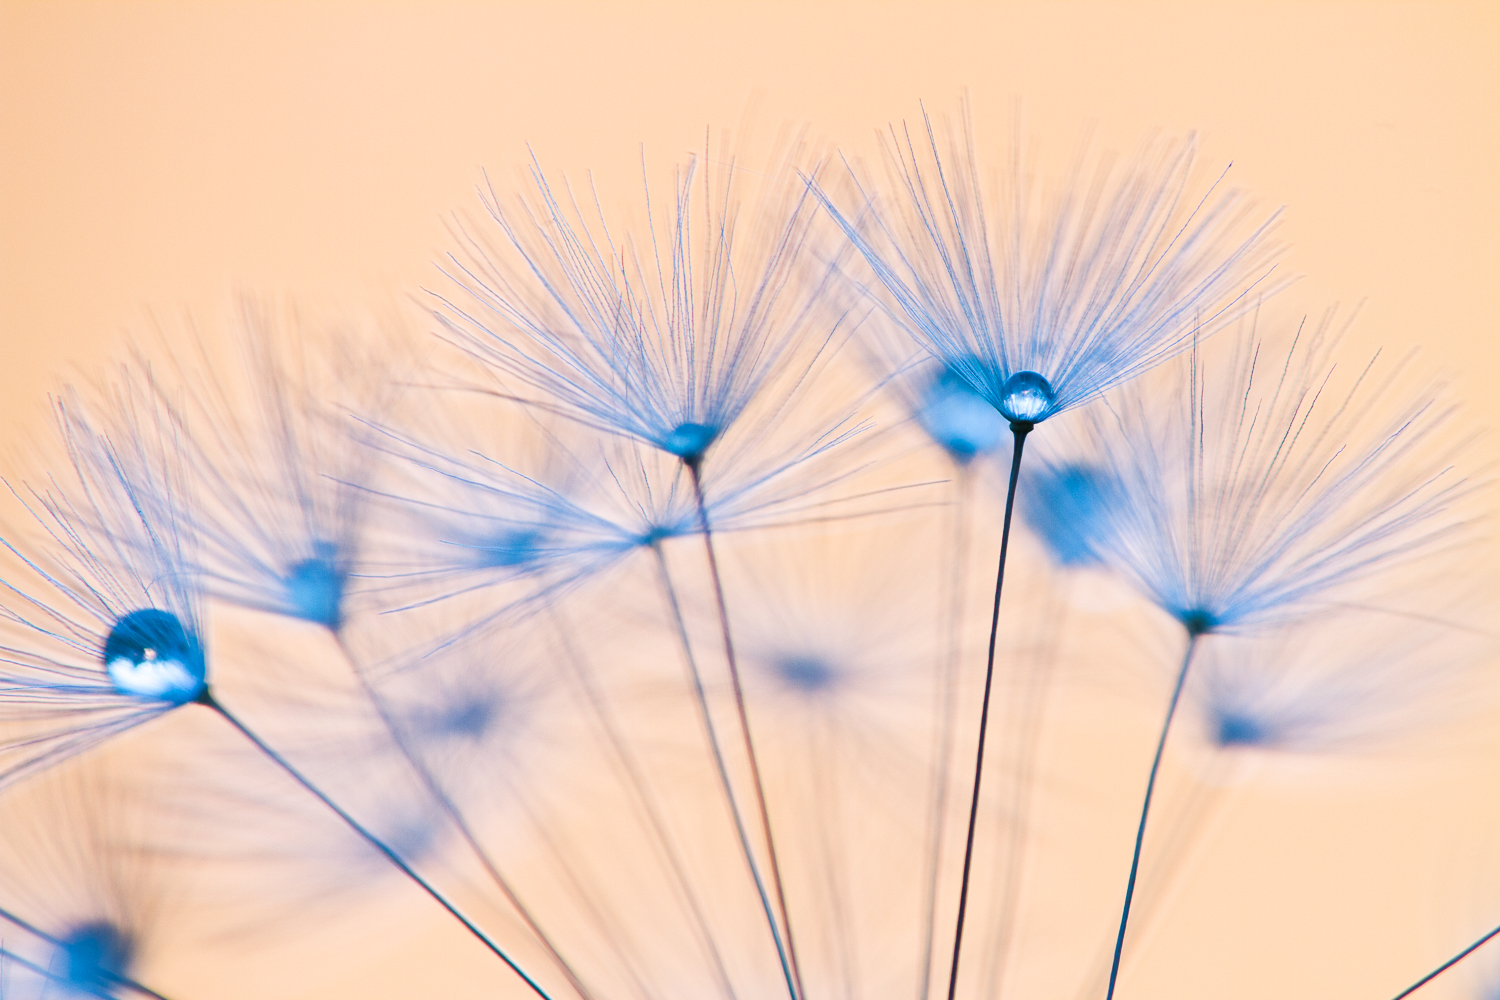 macro flower bokeh photography dandelion - Four Ways to Generate Stunning Bokeh in Your Images